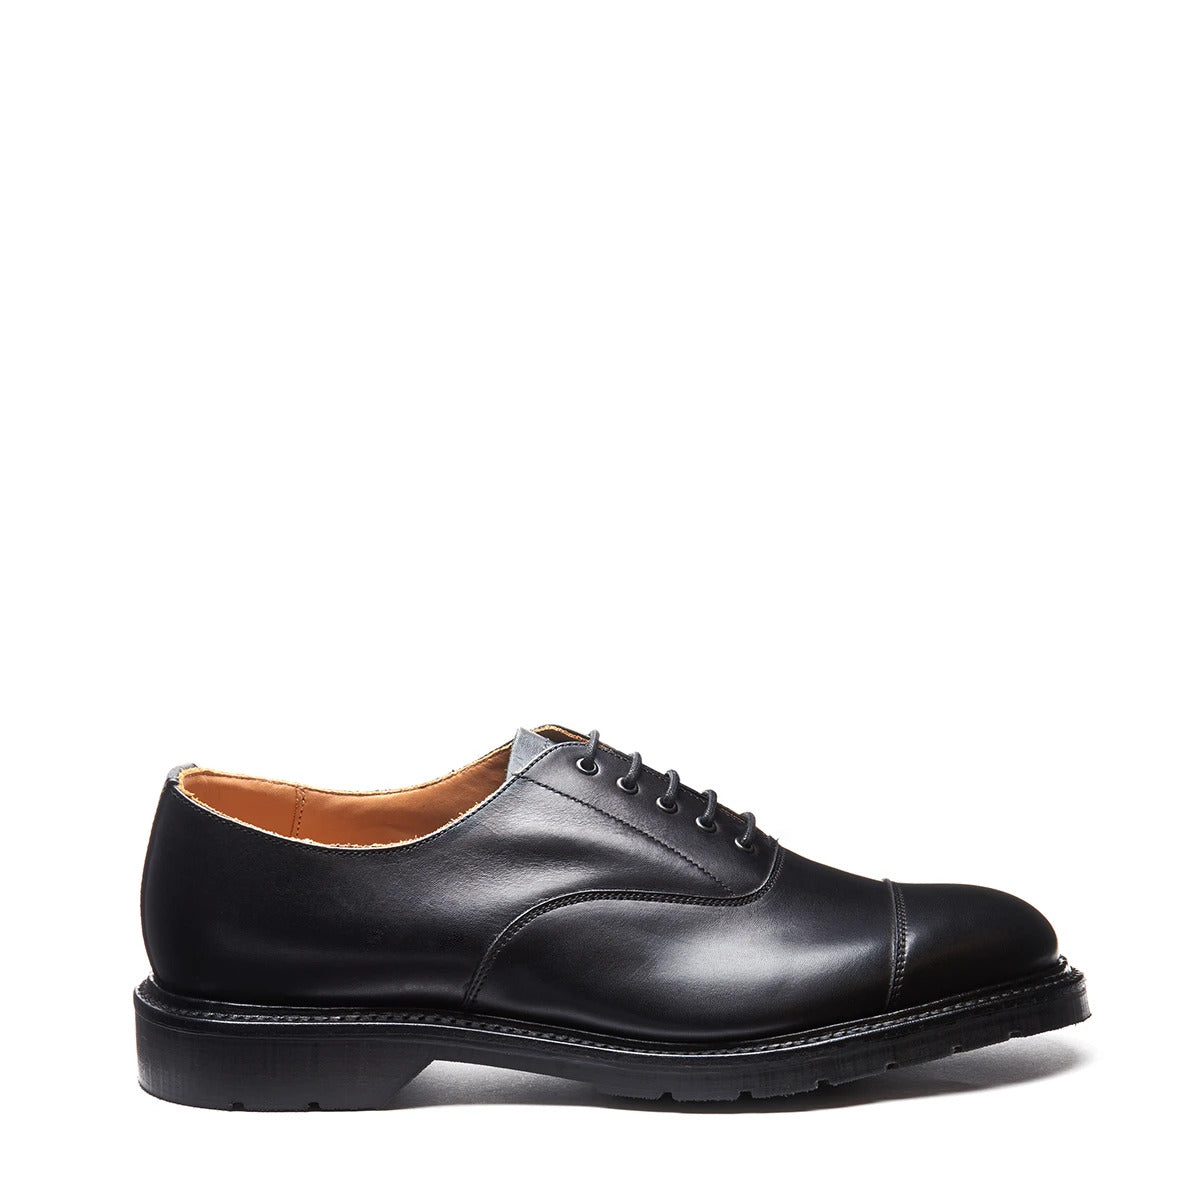 Solovair Capped Oxford Shoe - Black Calf